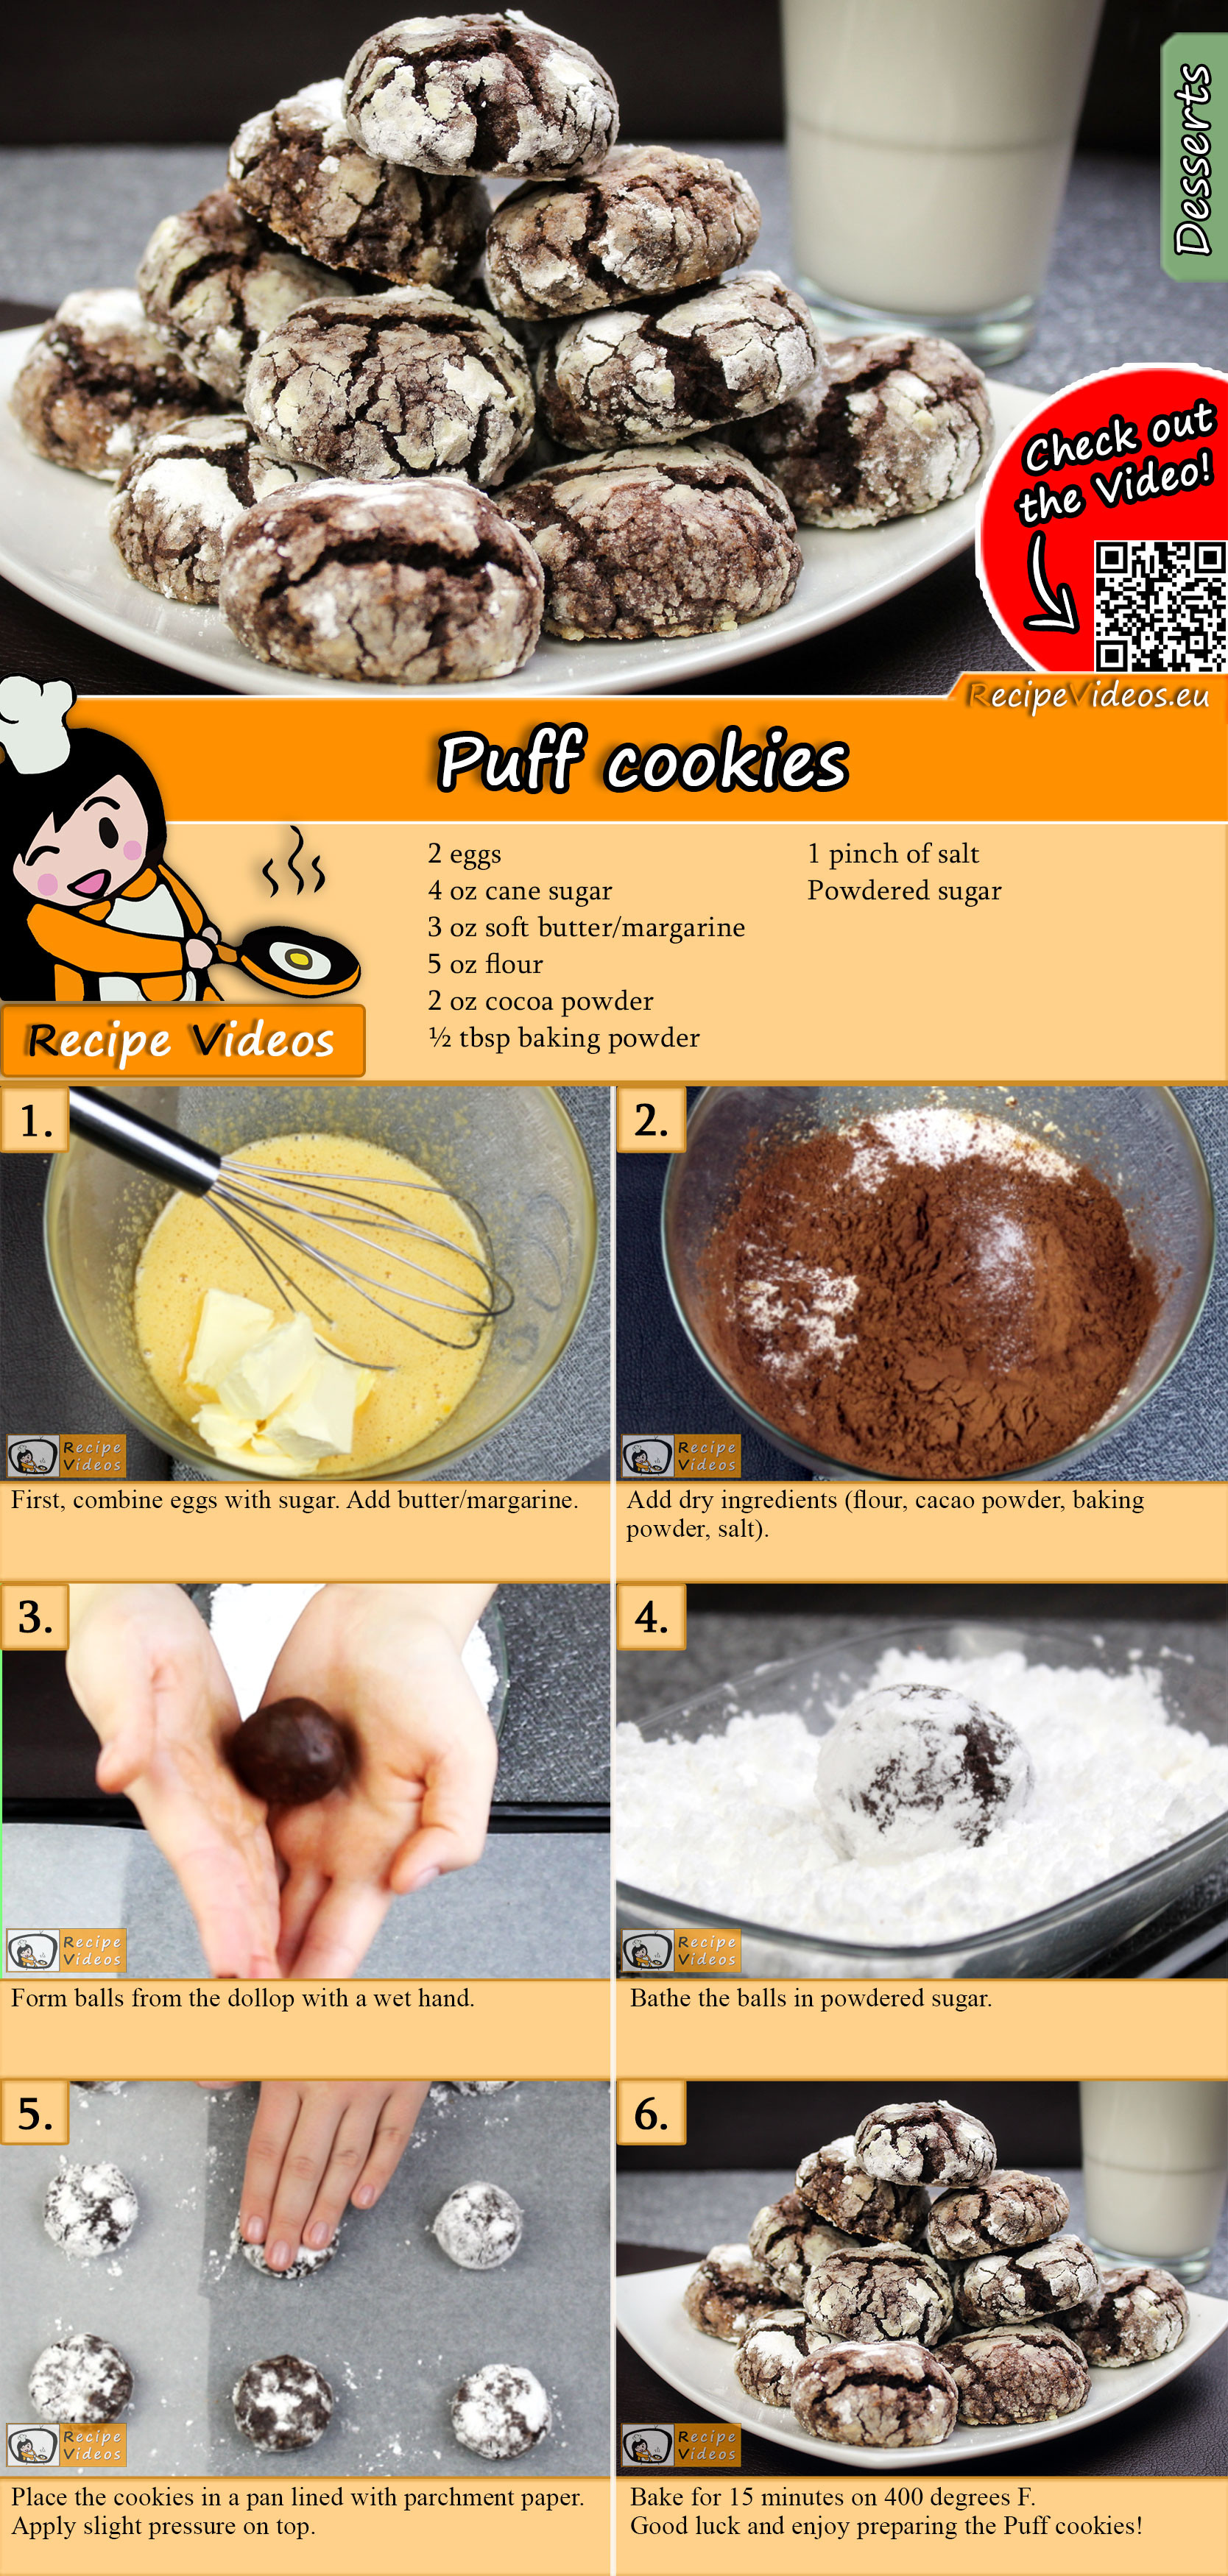 Puff cookies recipe with video